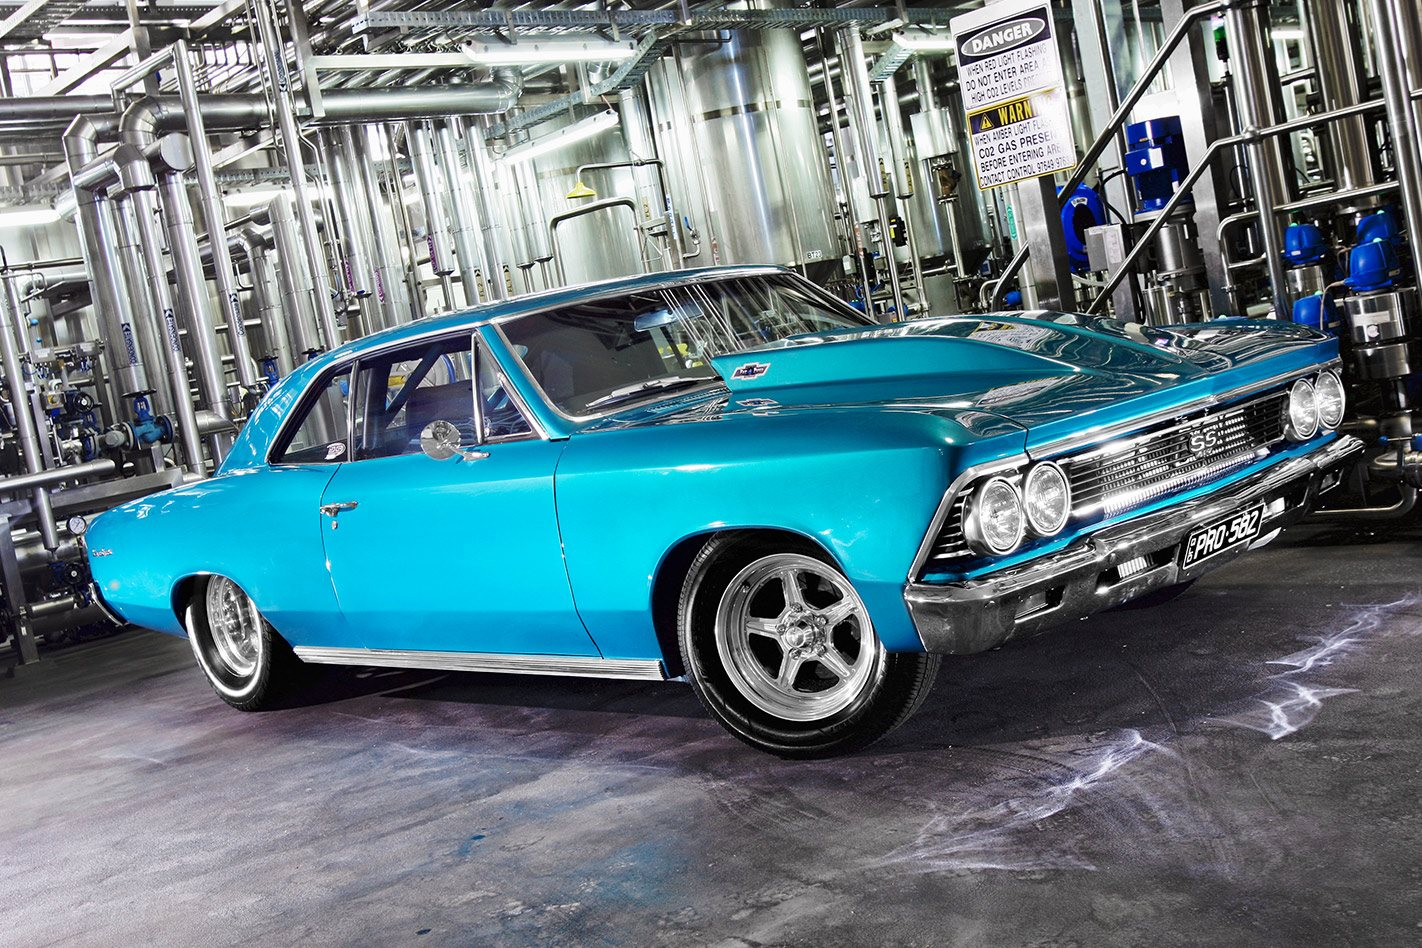 TWIN-TURBO 1966 CHEVROLET CHEVELLE SS